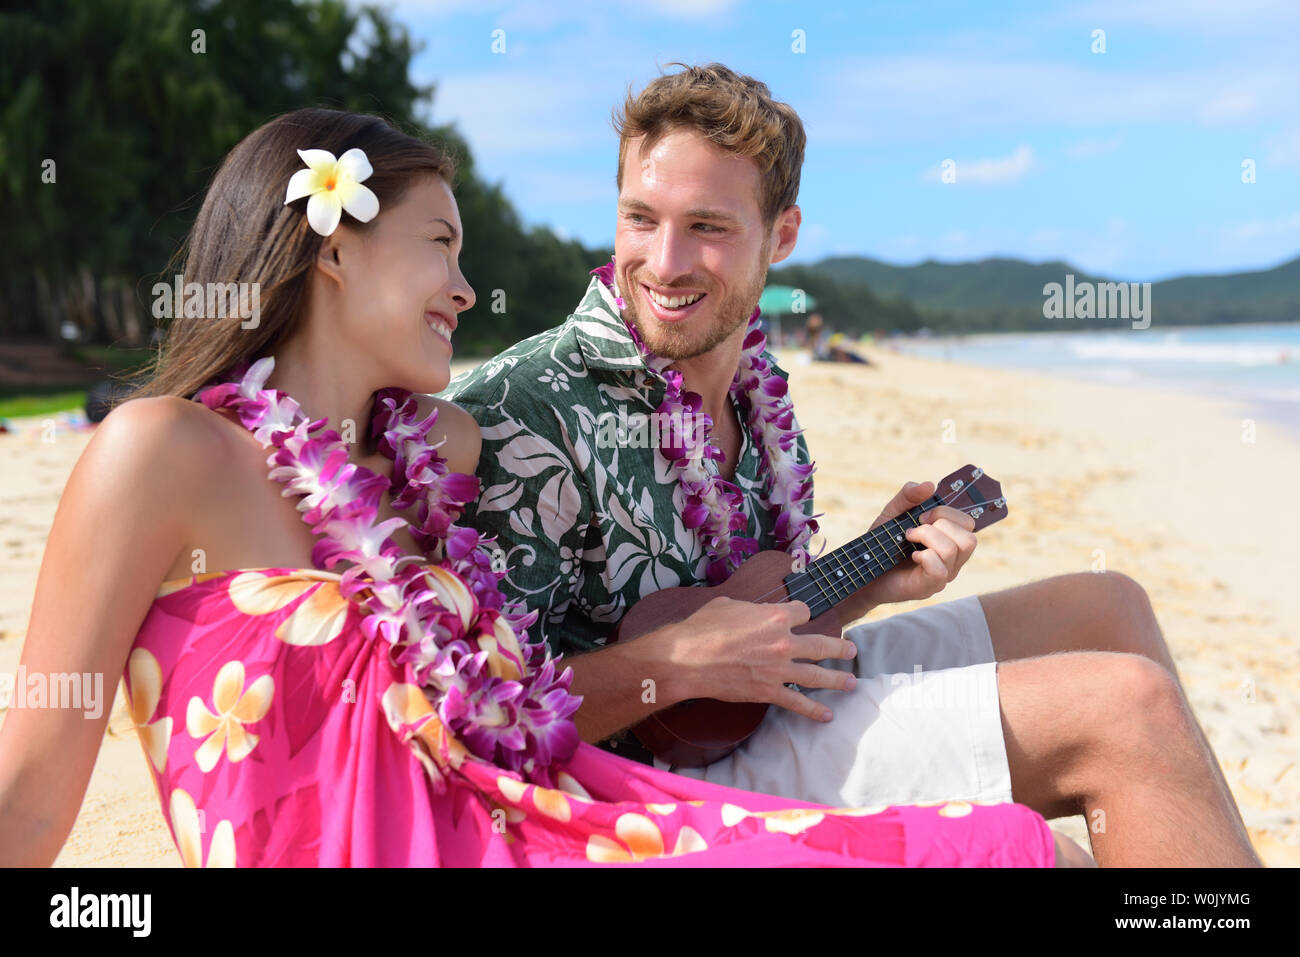 Man on beach playing ukulele instrument on Hawaii with having fun. Young couple, woman and man in love on beach vacations in Hawaiian clothing wearing Aloha shirt dress and flower lei. - Stock Image